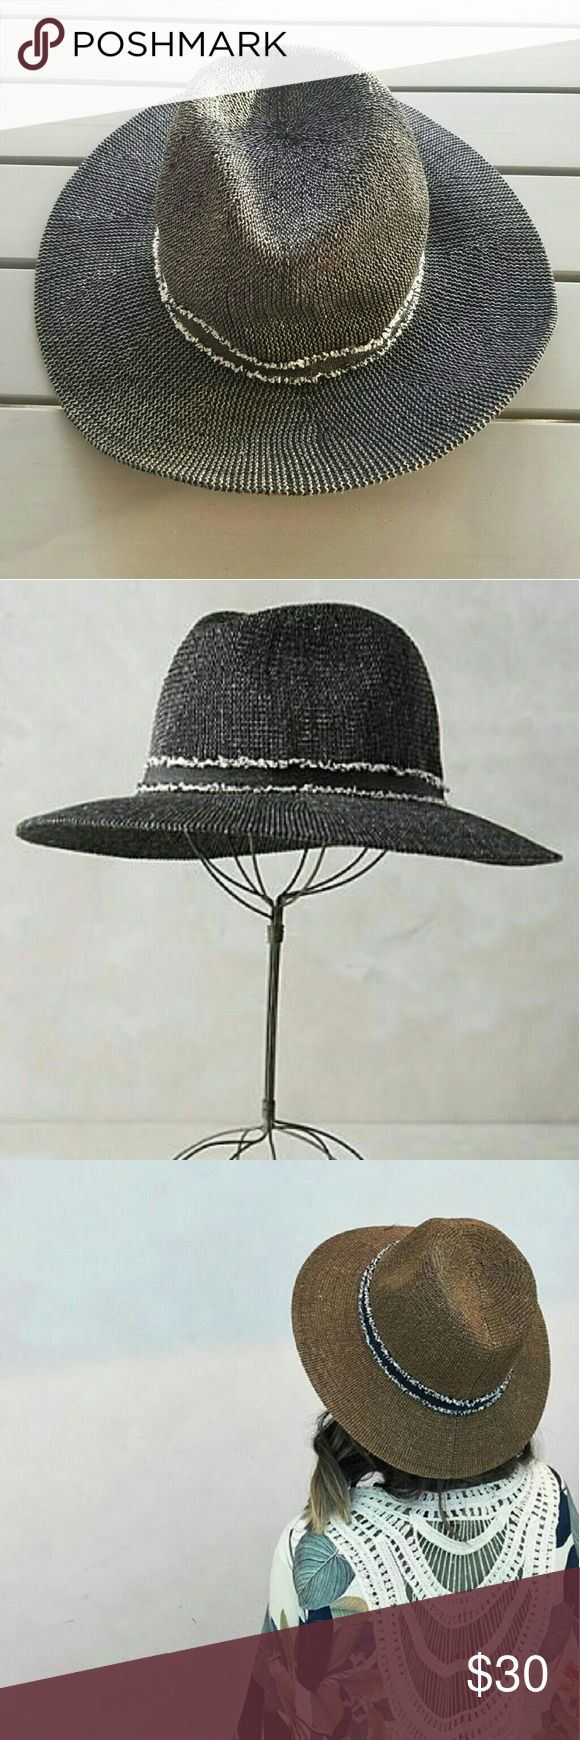 Anthropologie Pinyon Rancher Hat Black Rancher hat in excellent like new condition. Worn once for short period of time but had to remove because too tight around my big forehead. pinyon  Accessories Hats